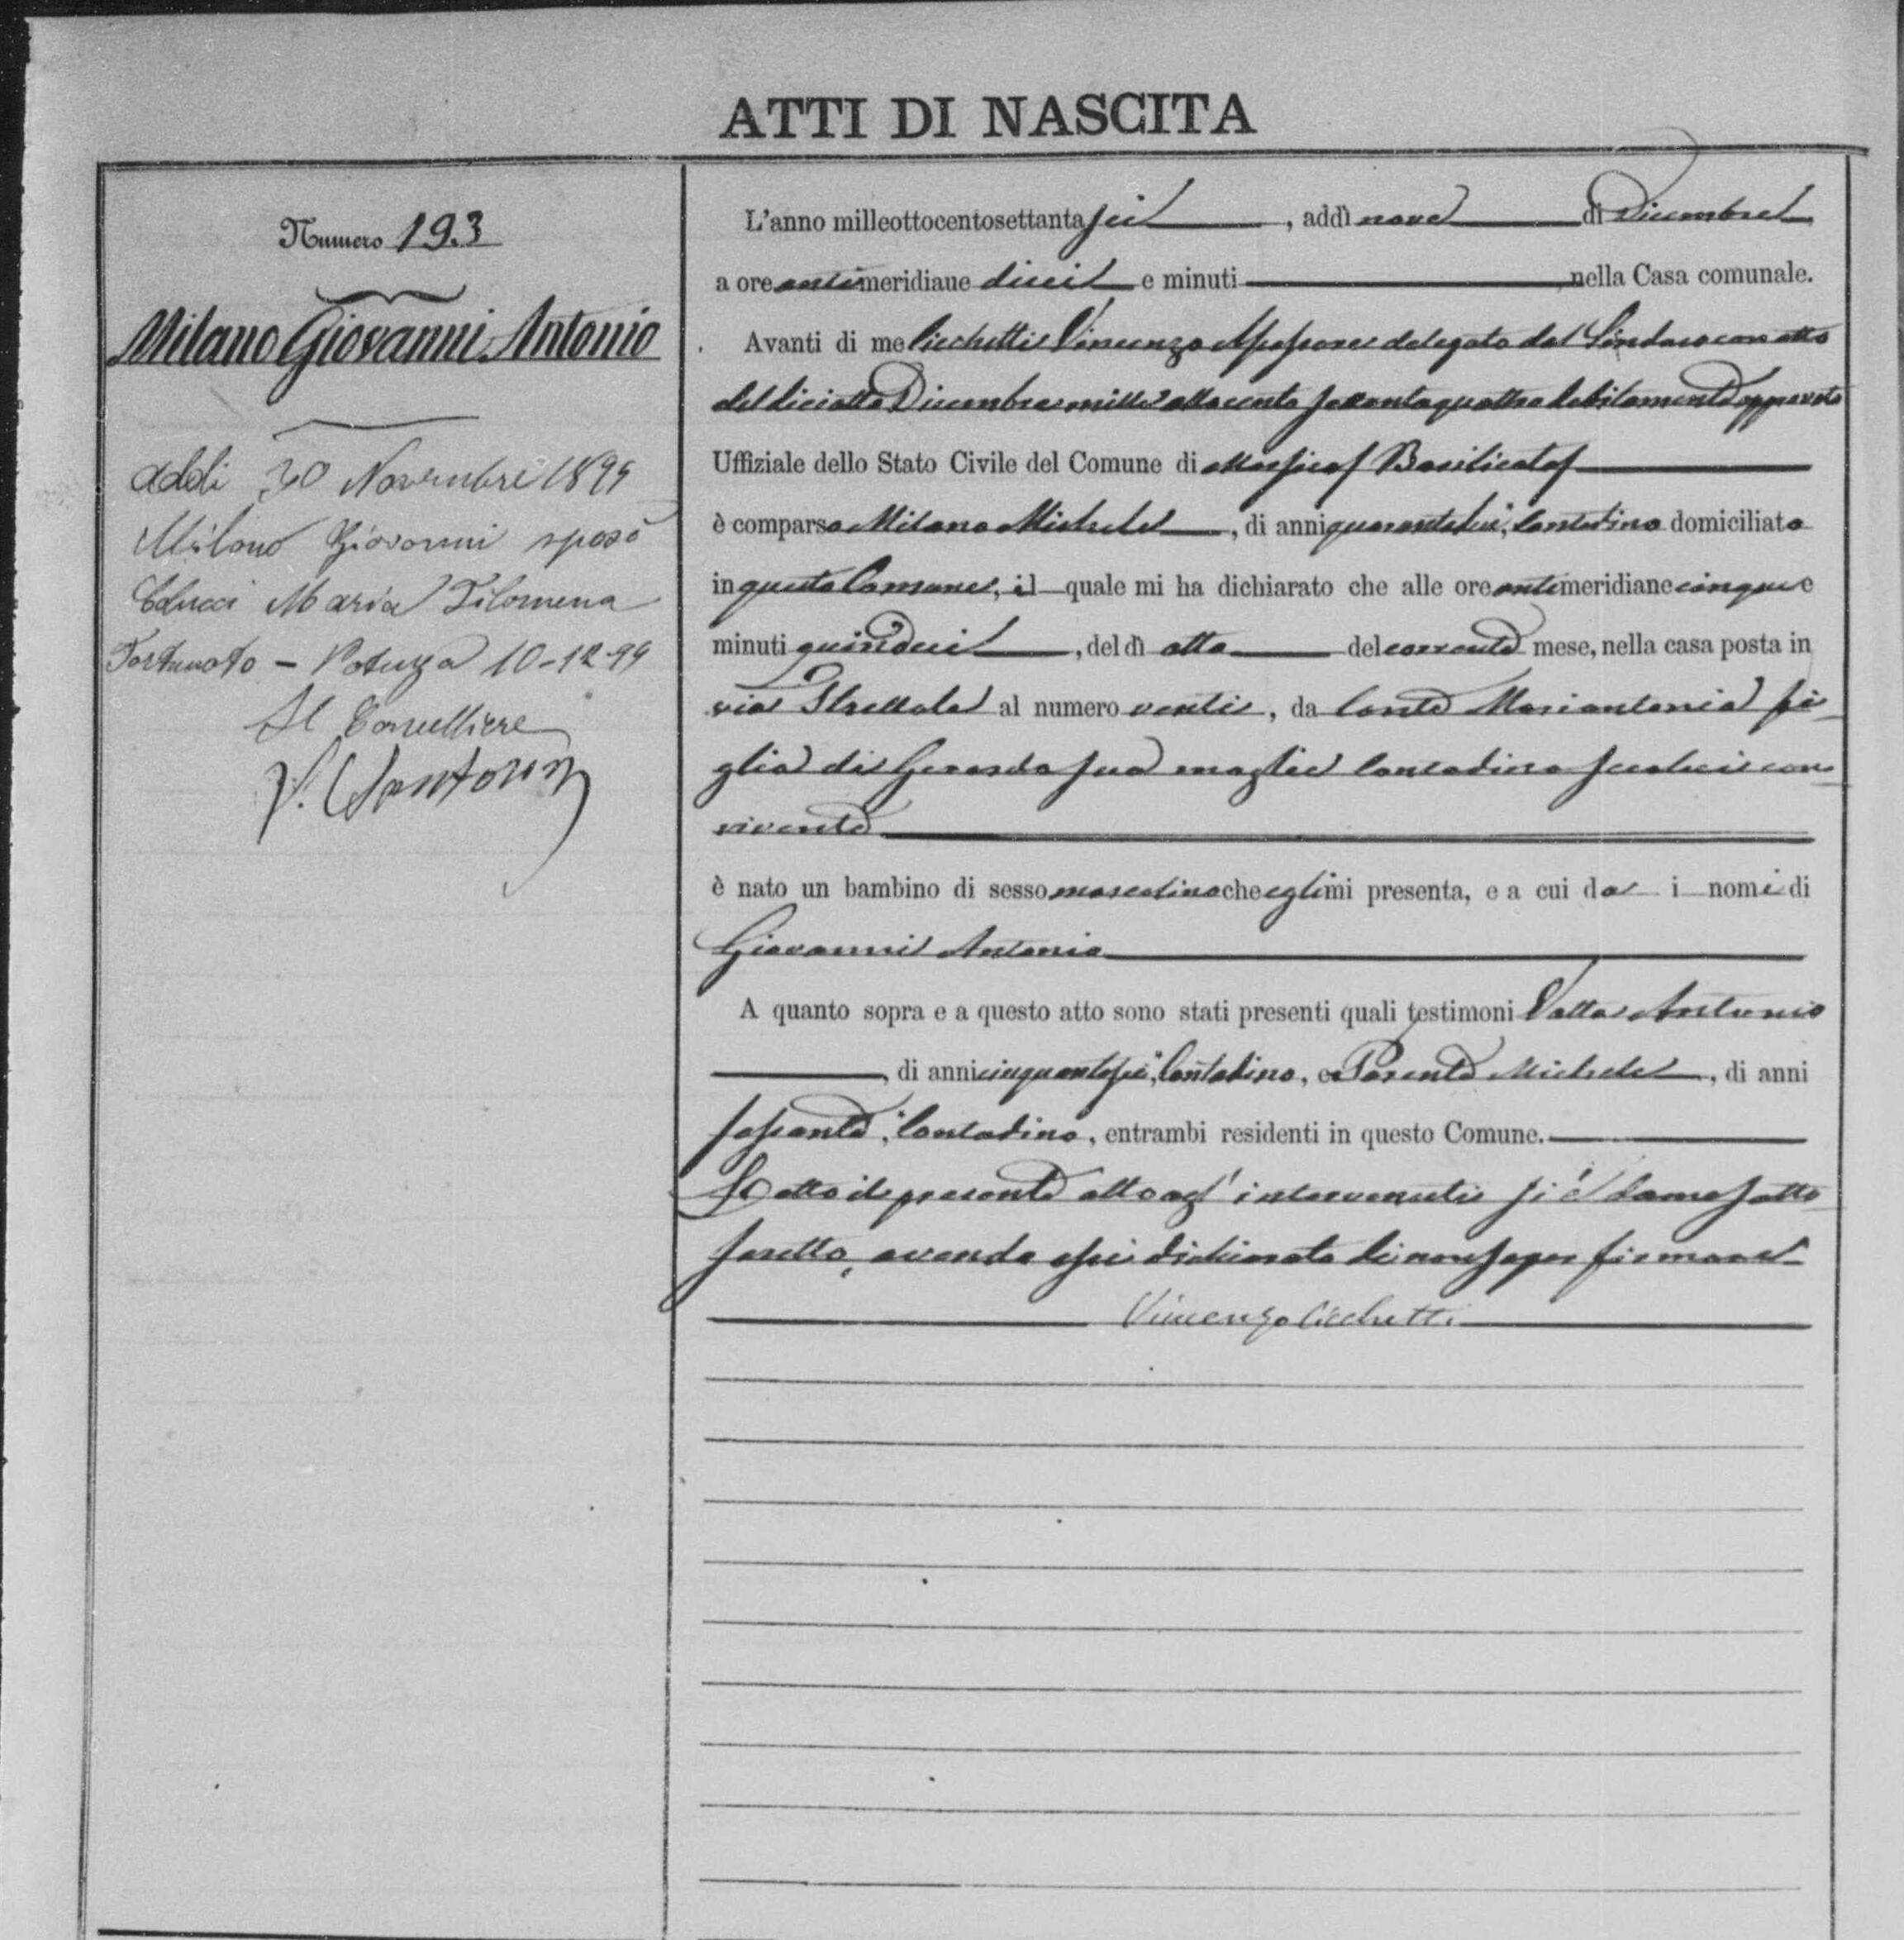 Milano Giovanni Antonio Dec 8 1879 birth record.jpg